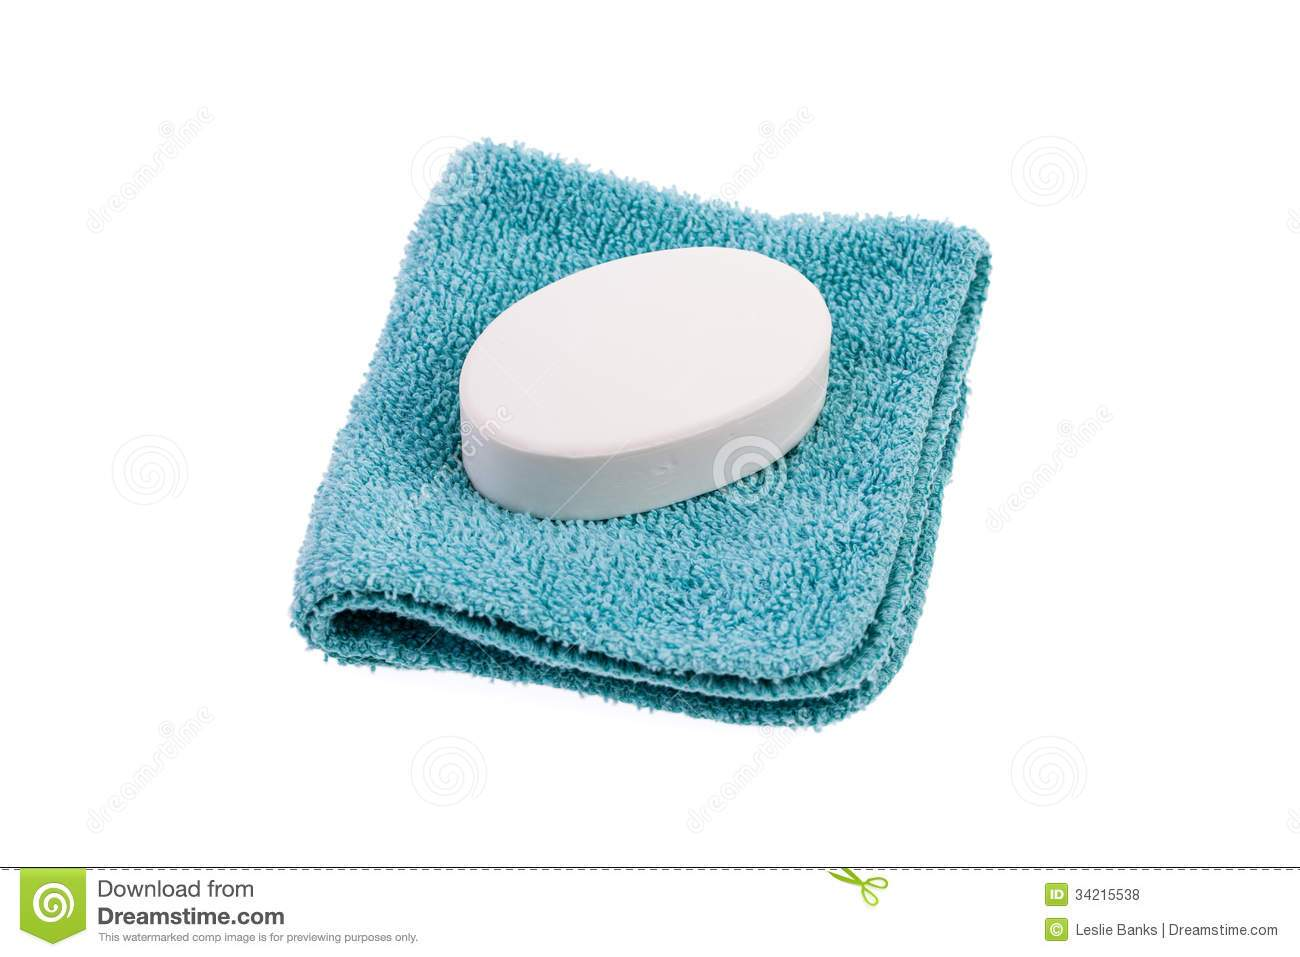 Washcloth clipart 1 » Clipart Portal.